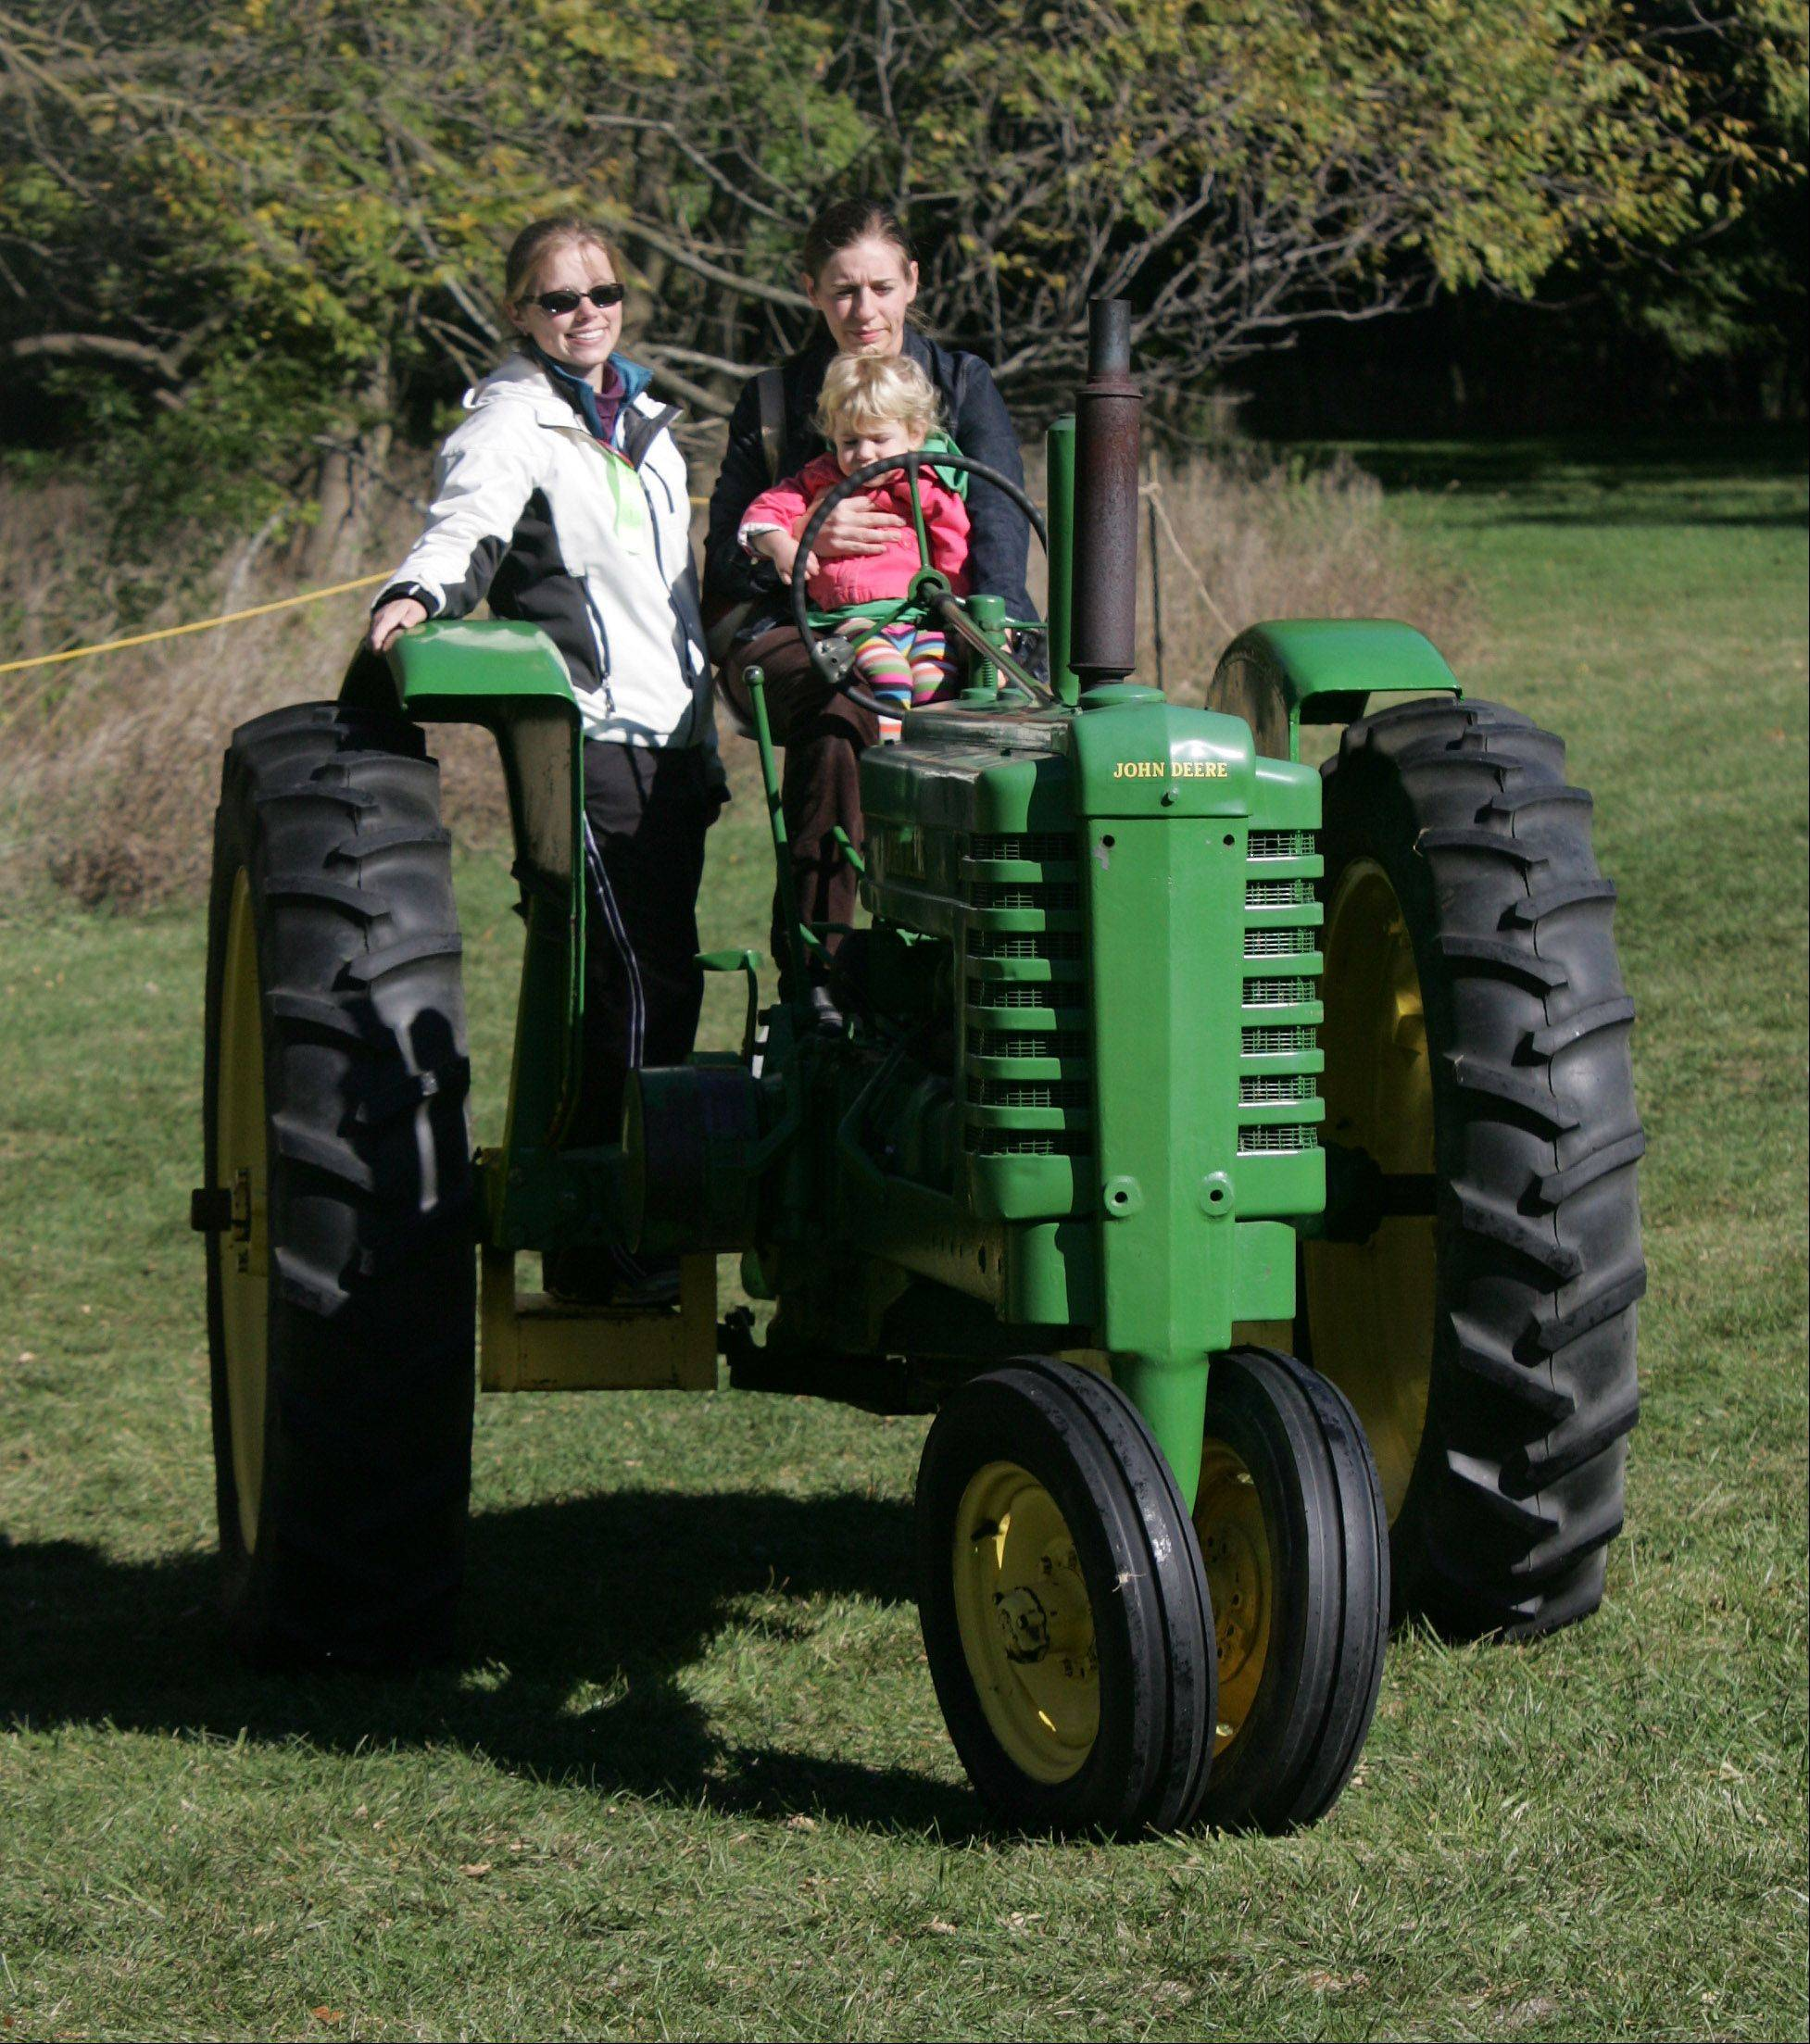 Gilbert R. Boucher II/gboucher@dailyherald.comDana Allan, of Libertyville and her daughter, Indy, 2, in her lap drive a 1941 B John Deere tractor with Rebecca Swanson during the 20th Annual Farm Heritage Festival Sunday at Lakewood Forest Preserve near Wauconda. The event was co-sponsored by the Lake County Discovery Museum and the Lake County Farm Heritage Association.